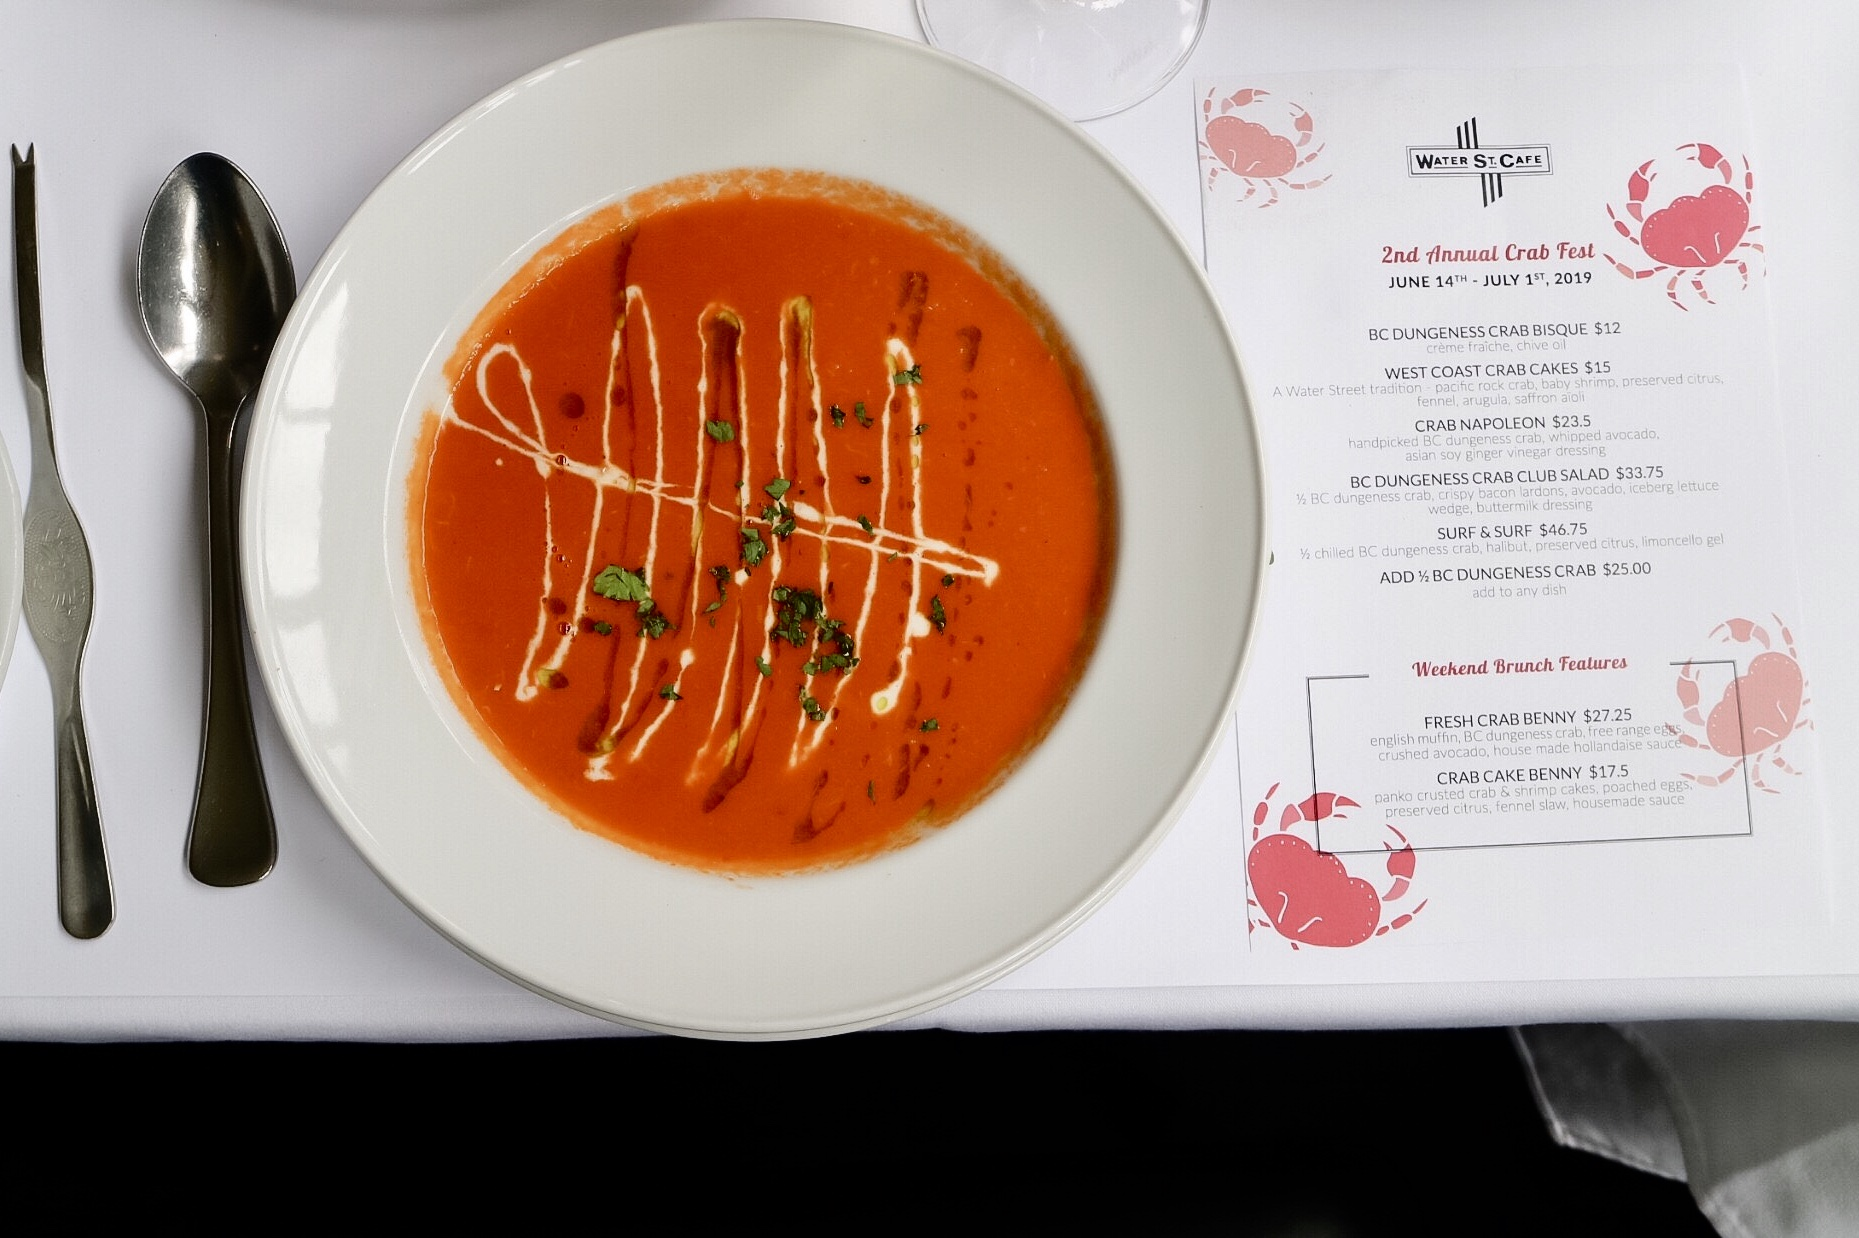 BC Dungeness Crab Bisque